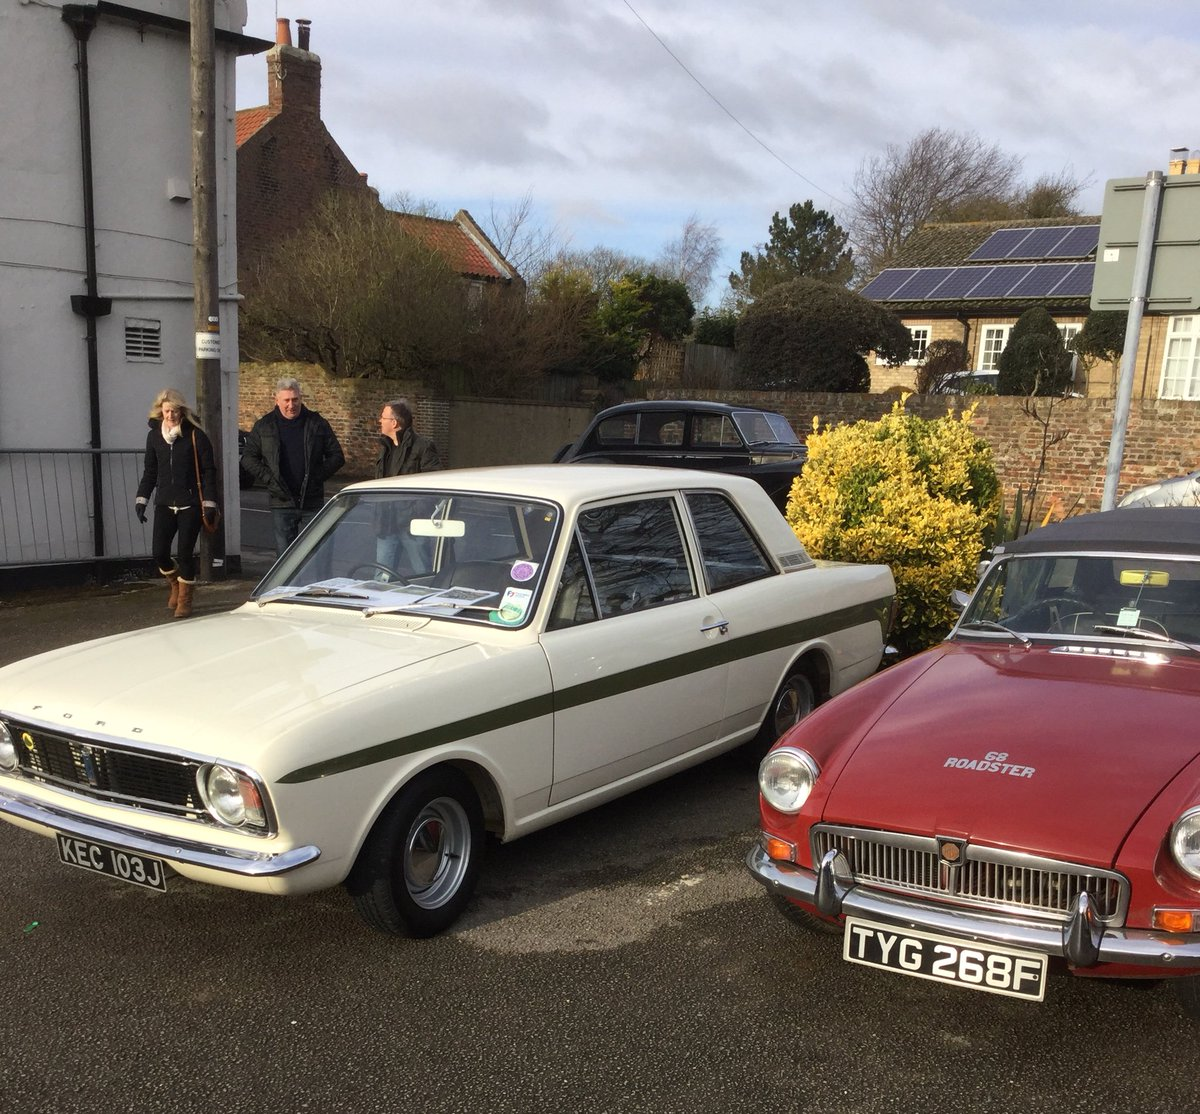 Sir Greg Knight MP On Twitter First Classic Car Meet Of The Year - Car meets near me today